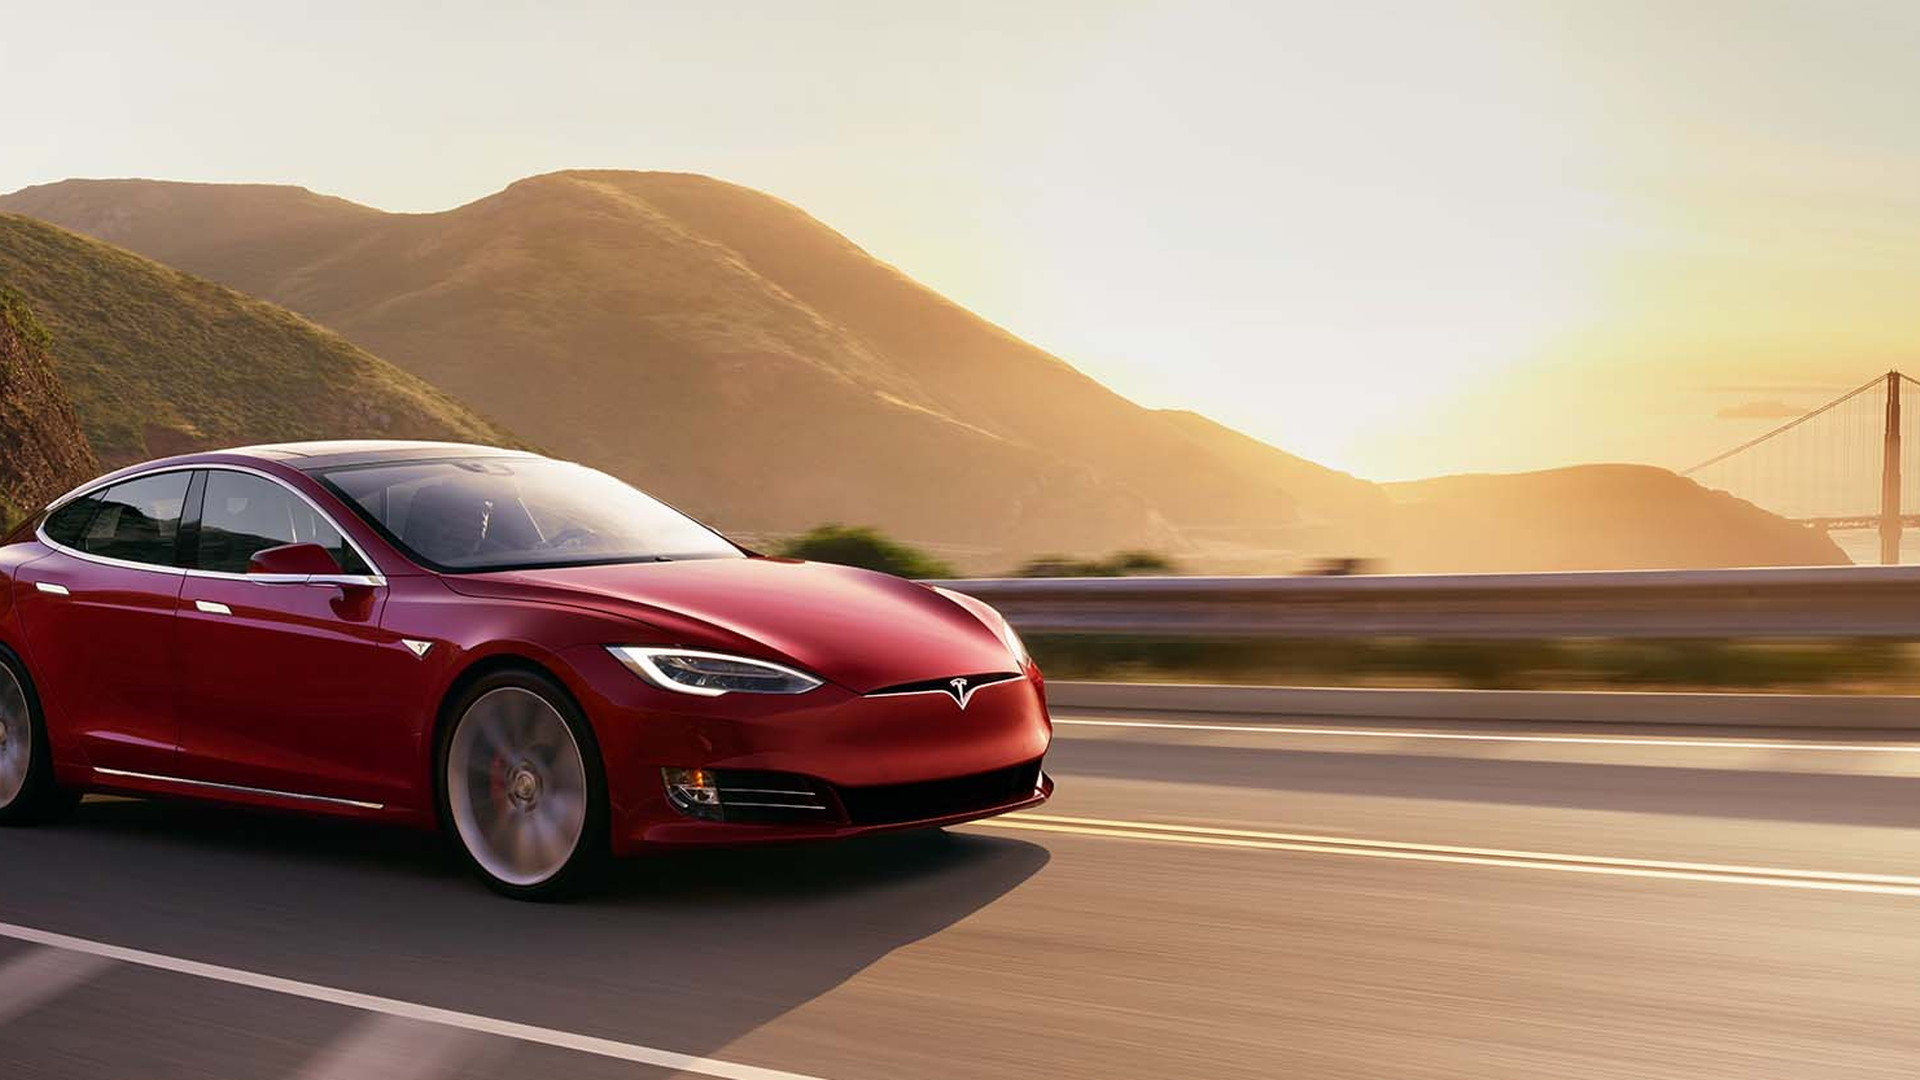 How high a hill could recharge a coasting Tesla electric car